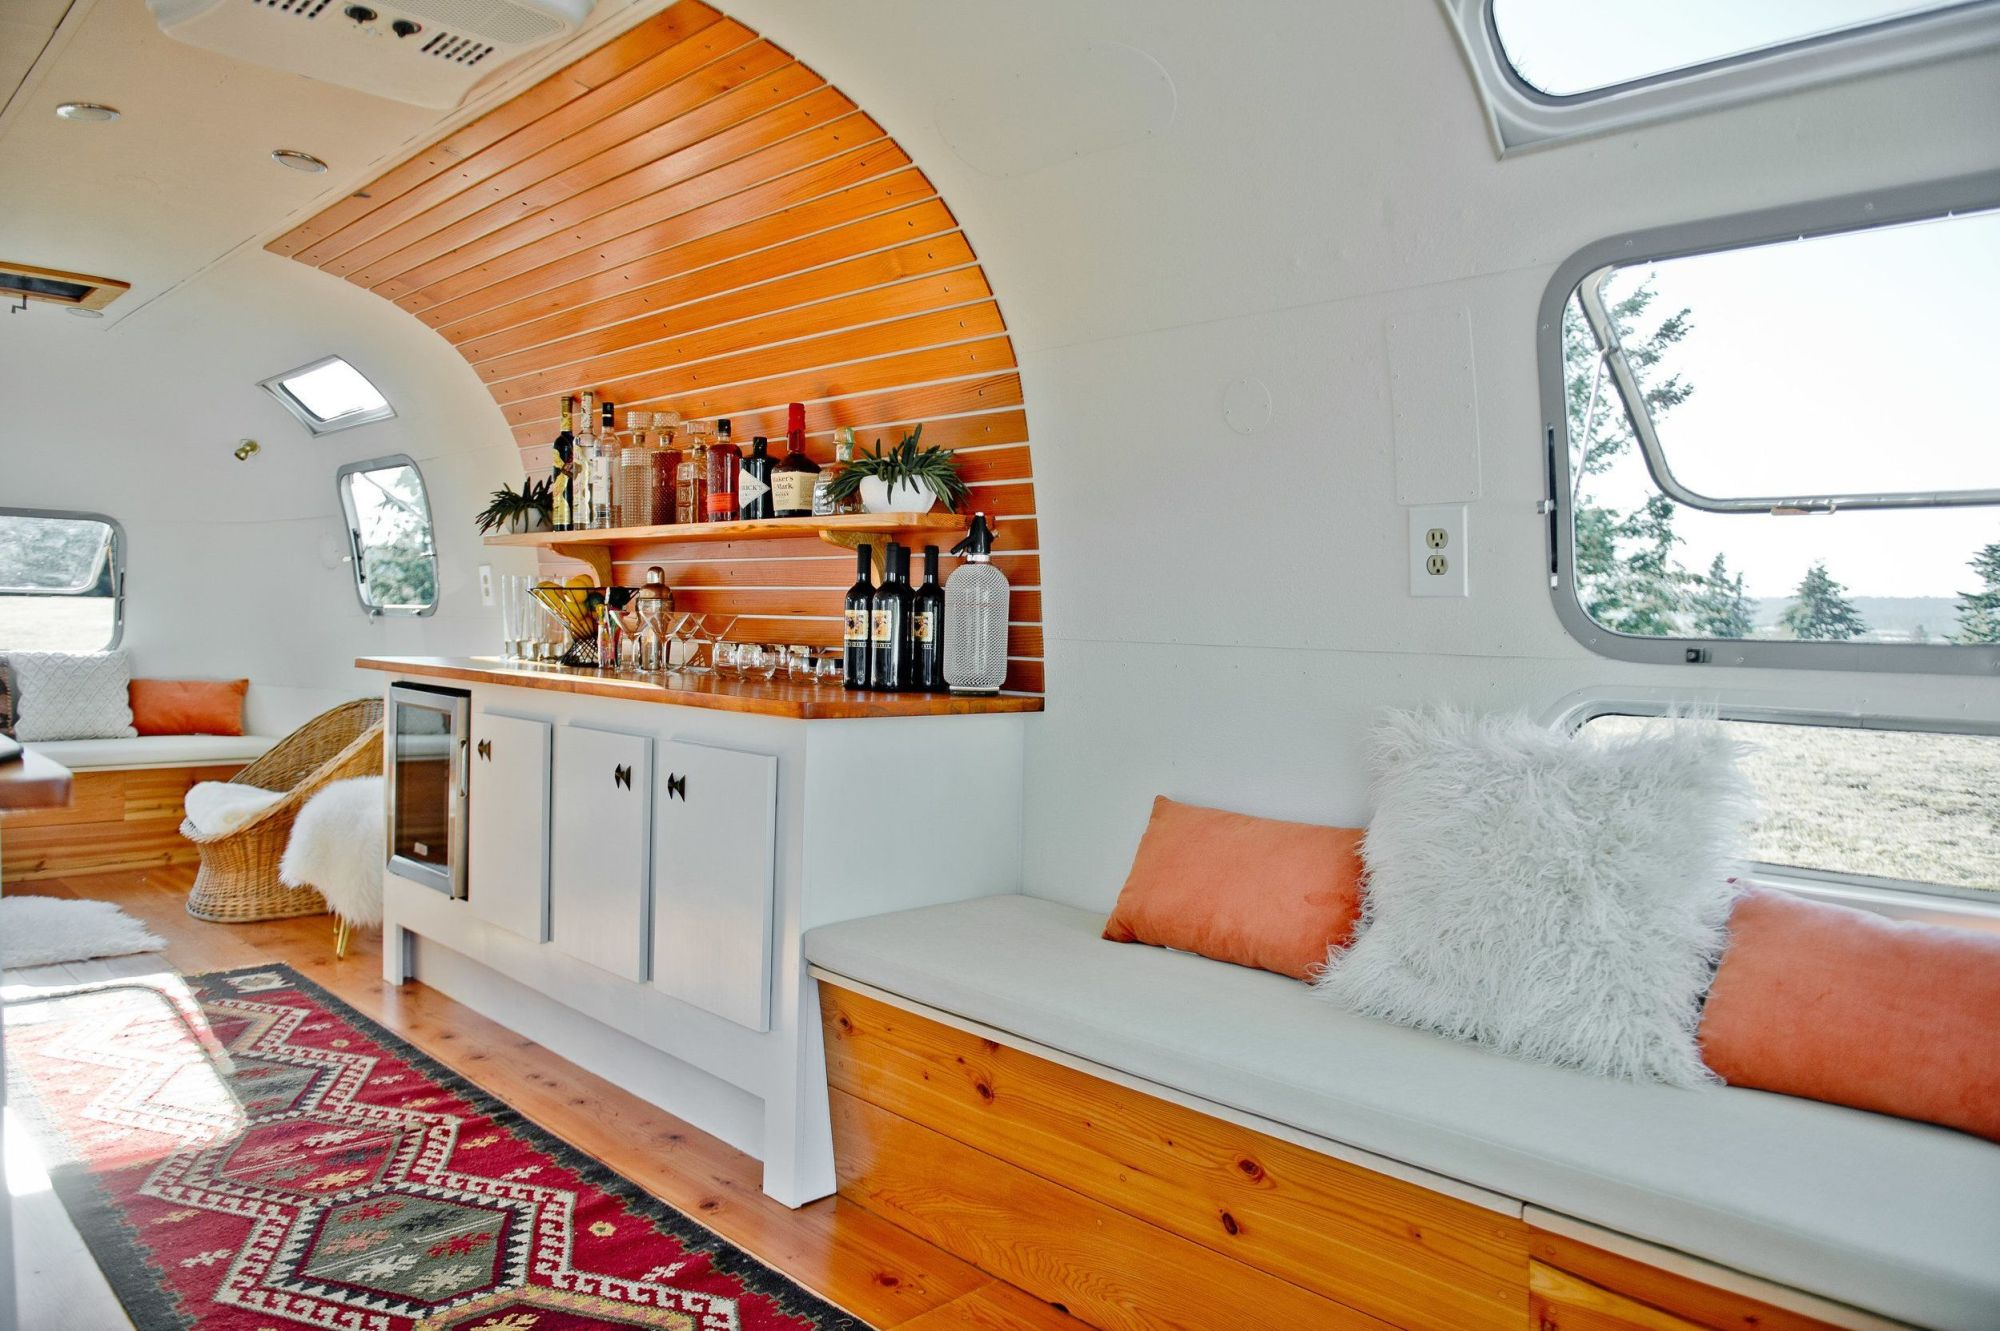 14 Awesome Bus Conversion Ideas